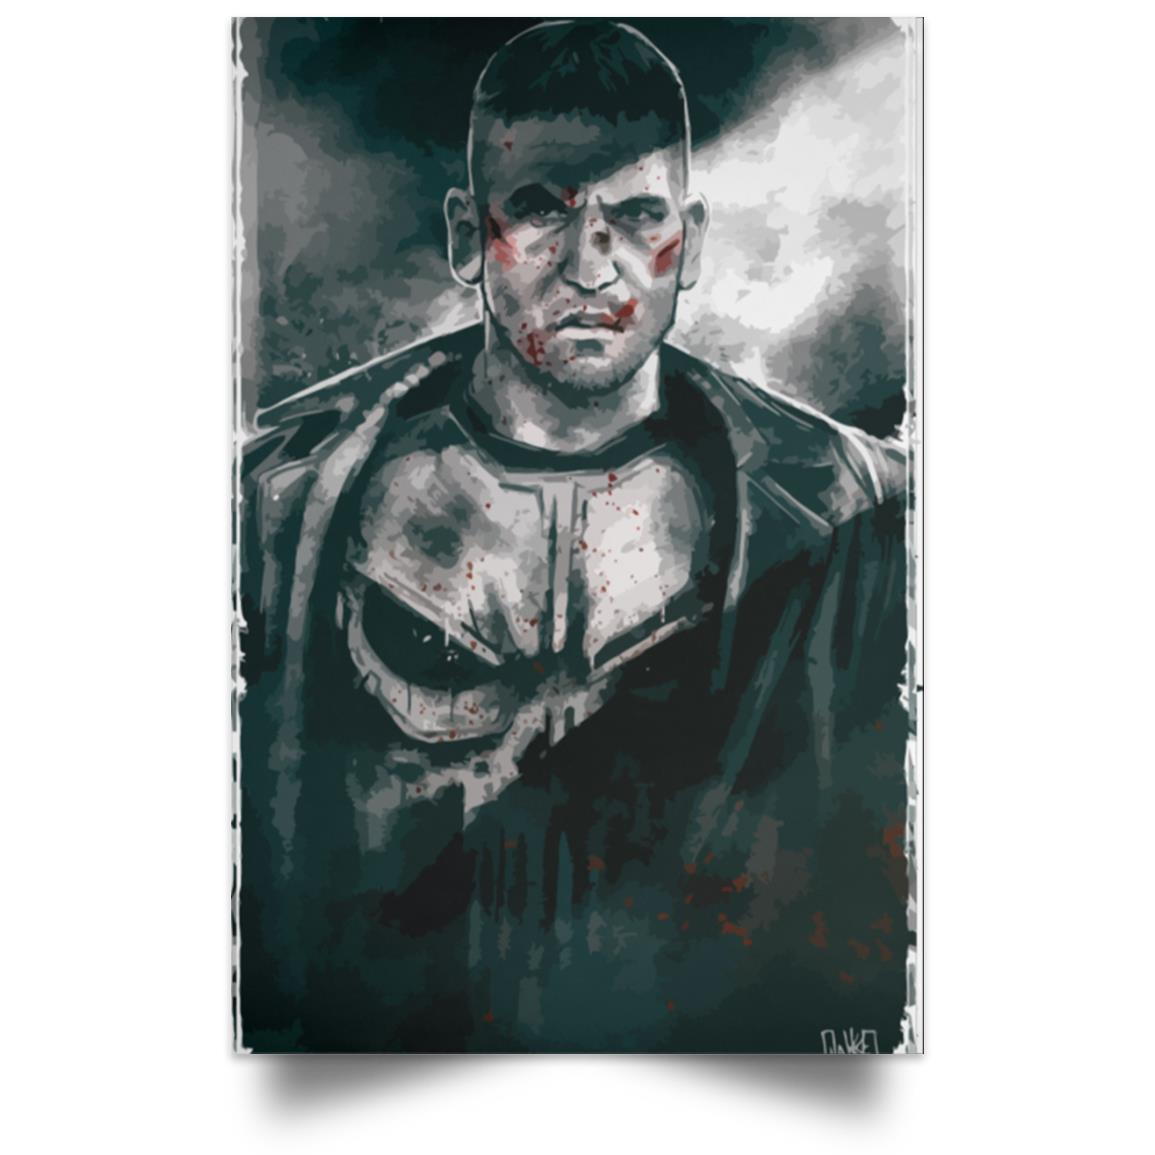 PUNISHER LIFE IS GREAT POSTER 1